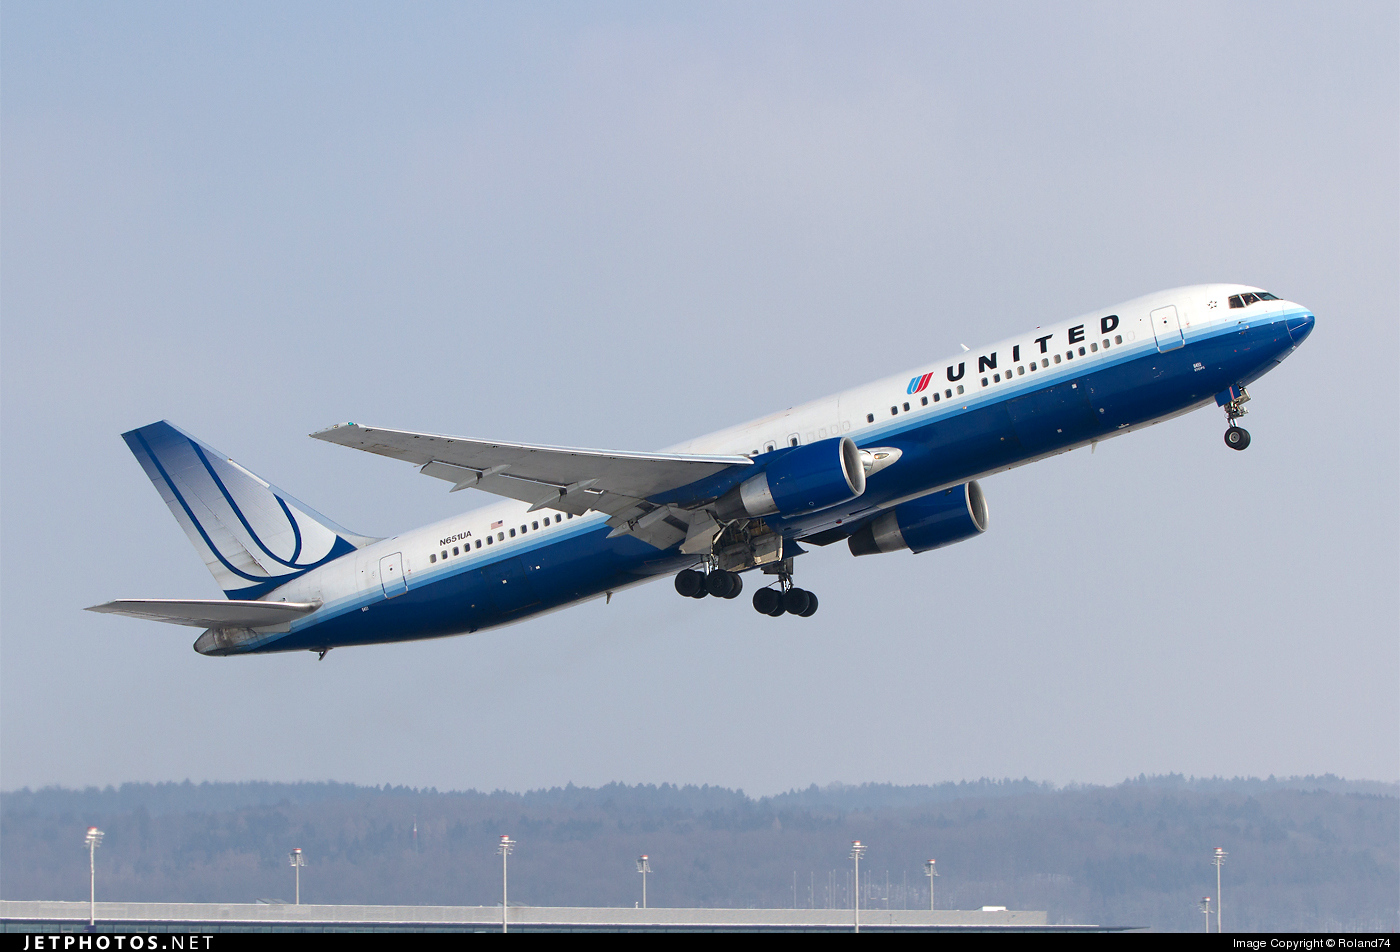 Photo of N651UA Boeing 767-322(ER) by Roland74